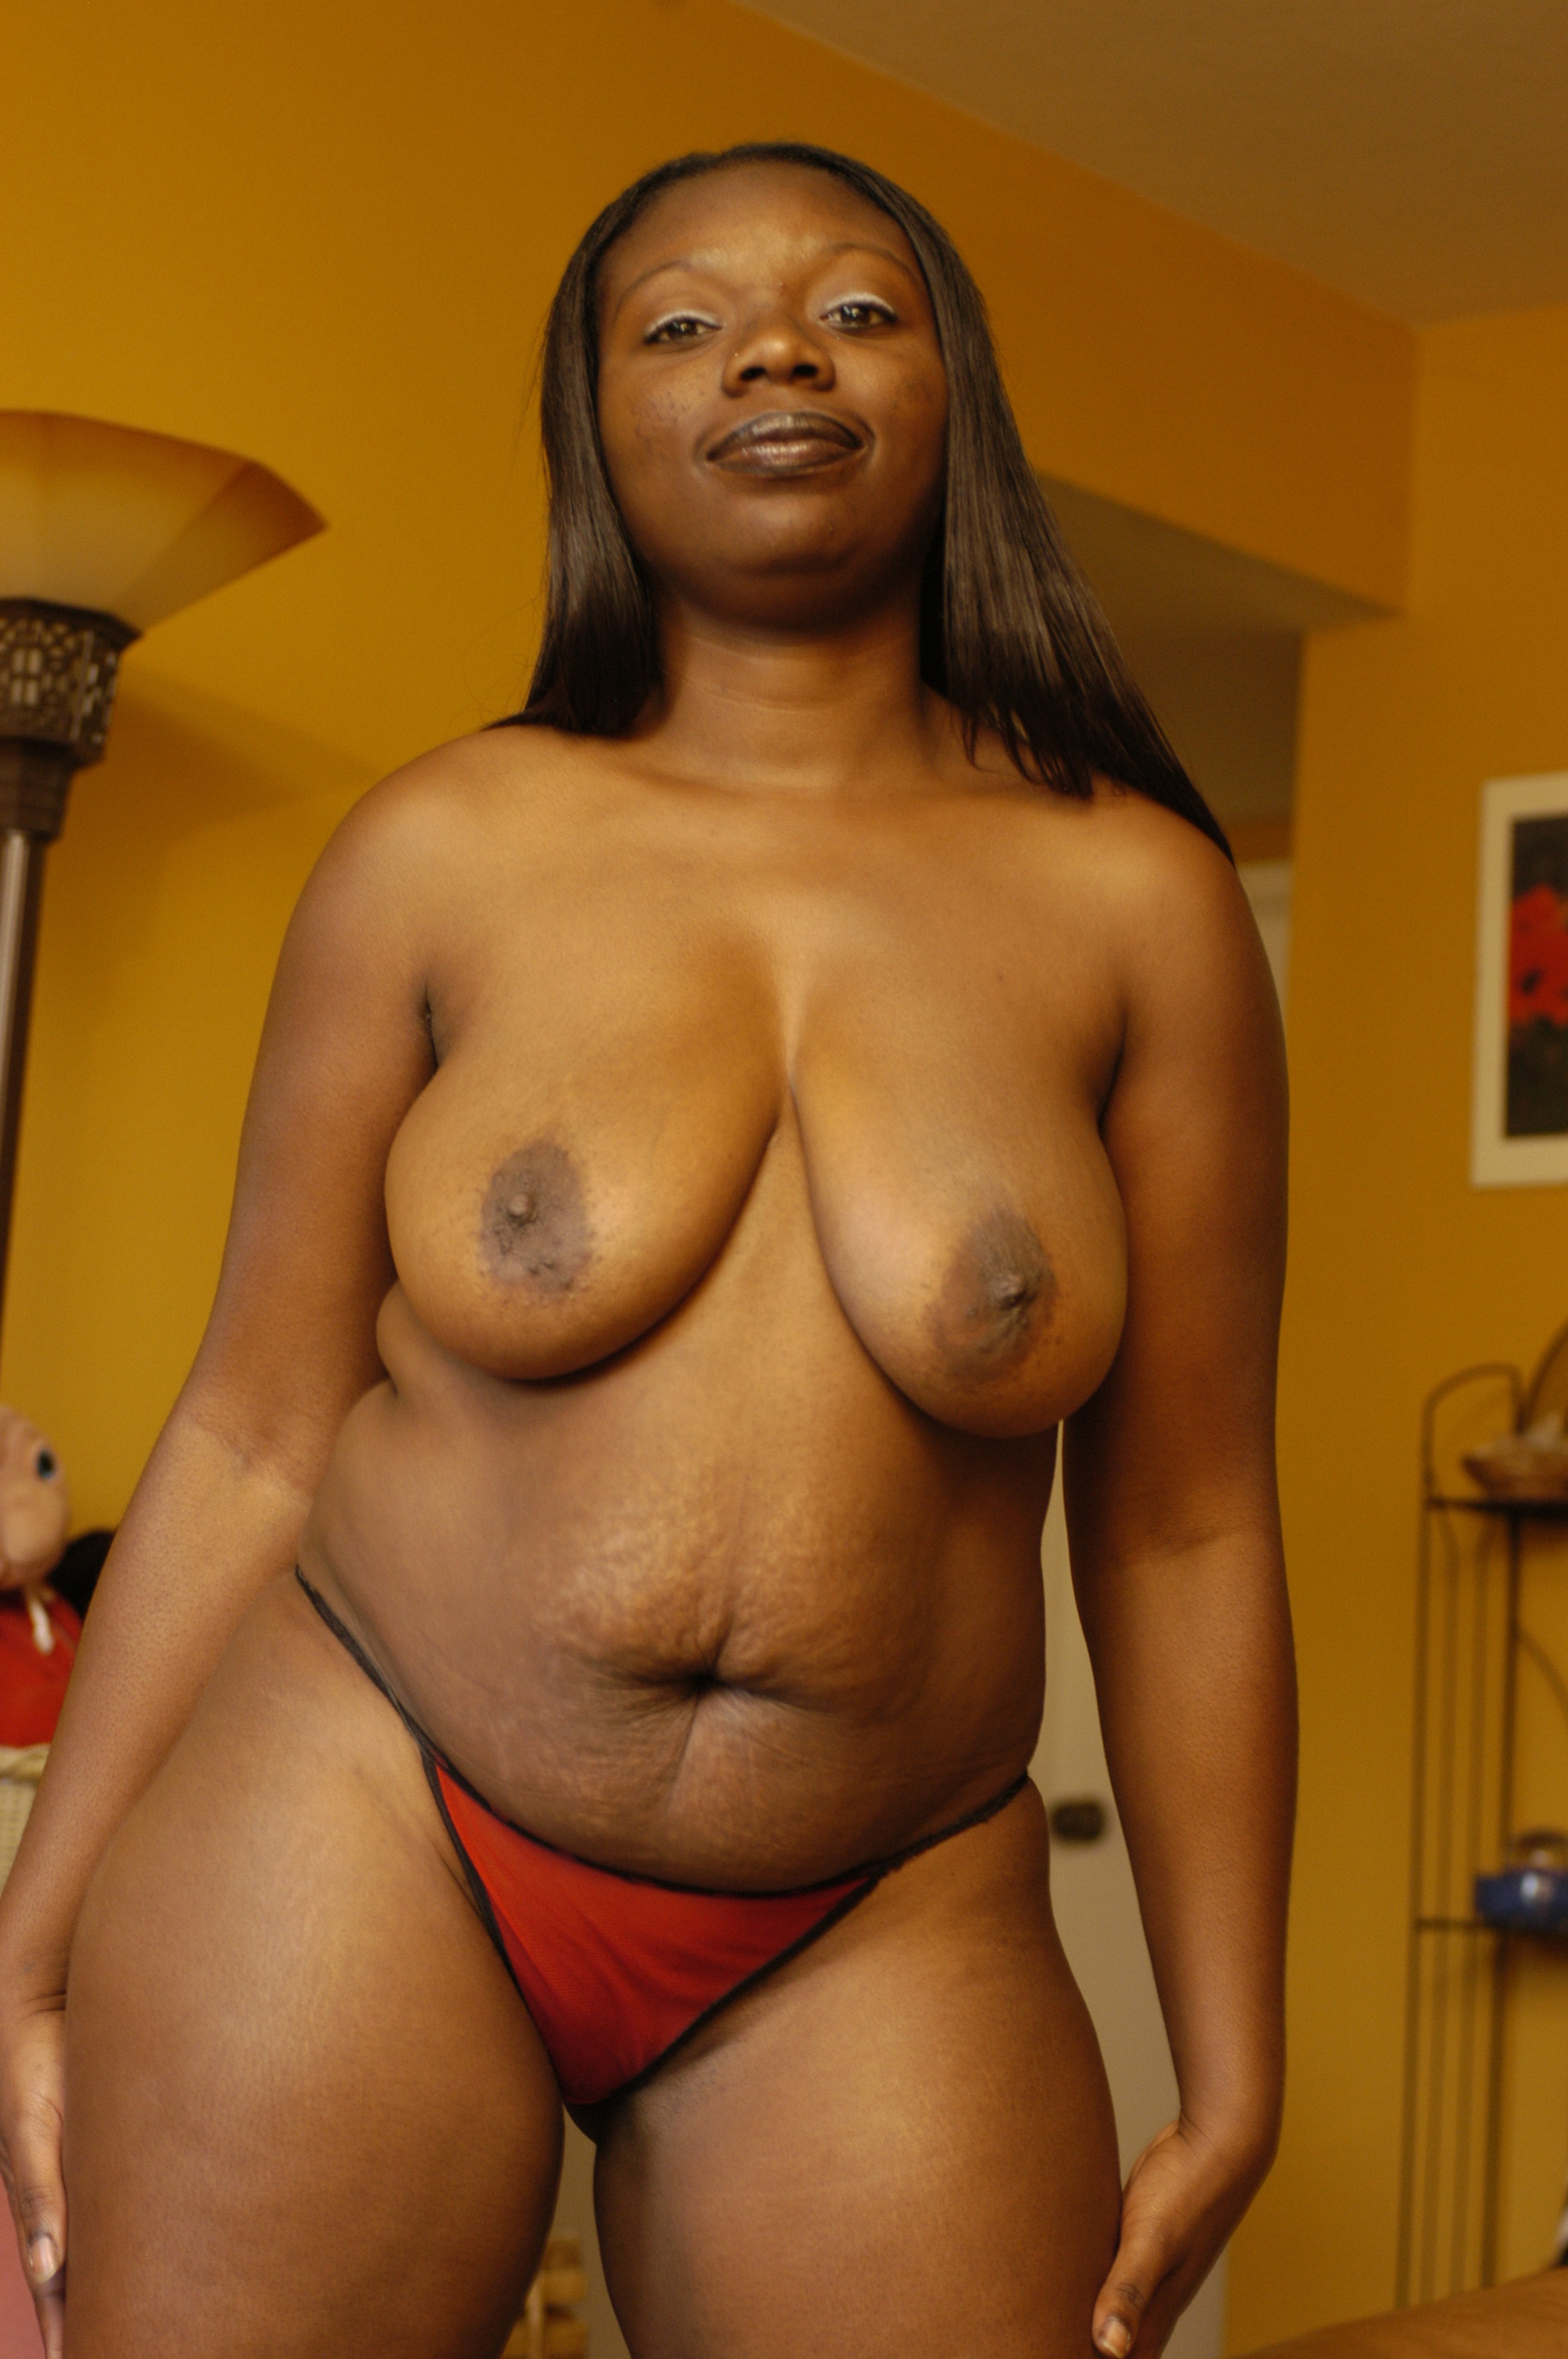 chubby girl naked pictures